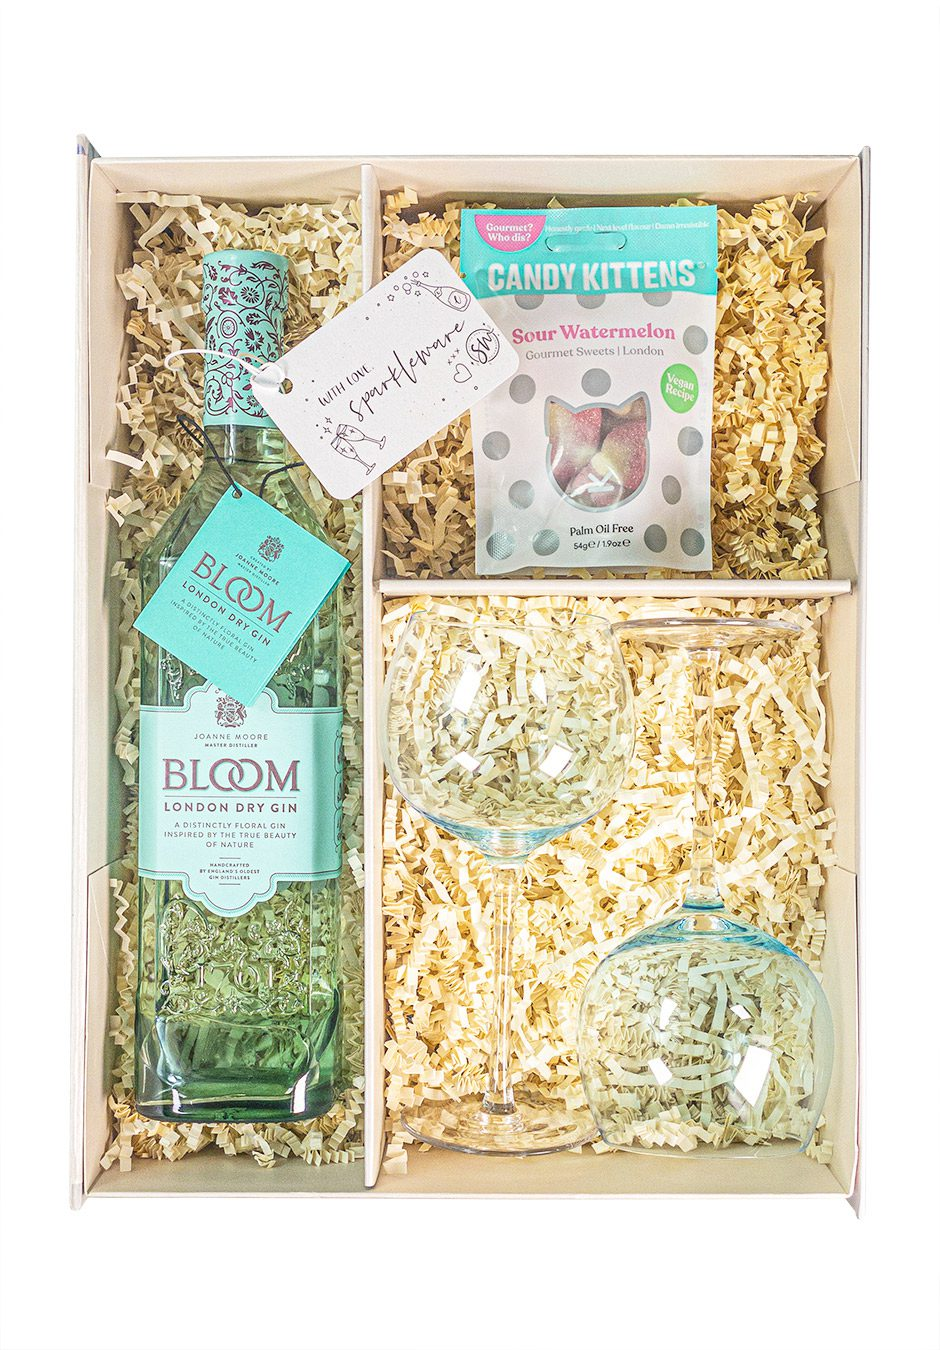 Bloom London Dry Gin   70cl   Sparkleware Gift Set   Keico Drinks